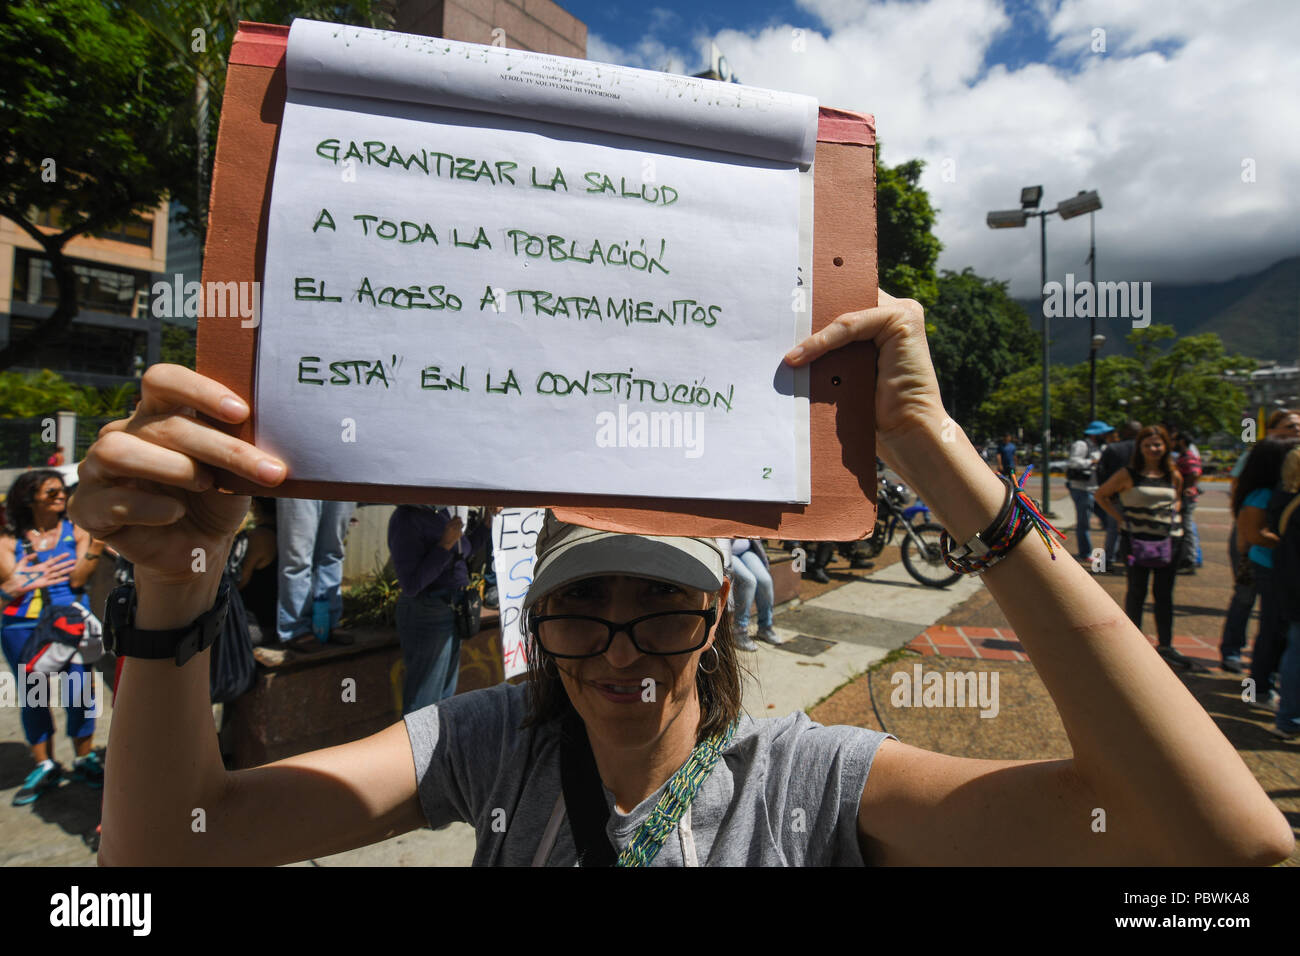 Caracas, Miranda, Venezuela. 30th July, 2018. A health worker seen holding a placard during the demonstration.Nurses, doctors and patients protest in front of the World Health Organization offices in Caracas for the lack of medicines and treatment in the hospitals. The government led by President Nicolas Maduro still does not solve the problem in the health sector and does not allow the humanitarian aid of other nations. Credit: Roman Camacho/SOPA Images/ZUMA Wire/Alamy Live News Stock Photo